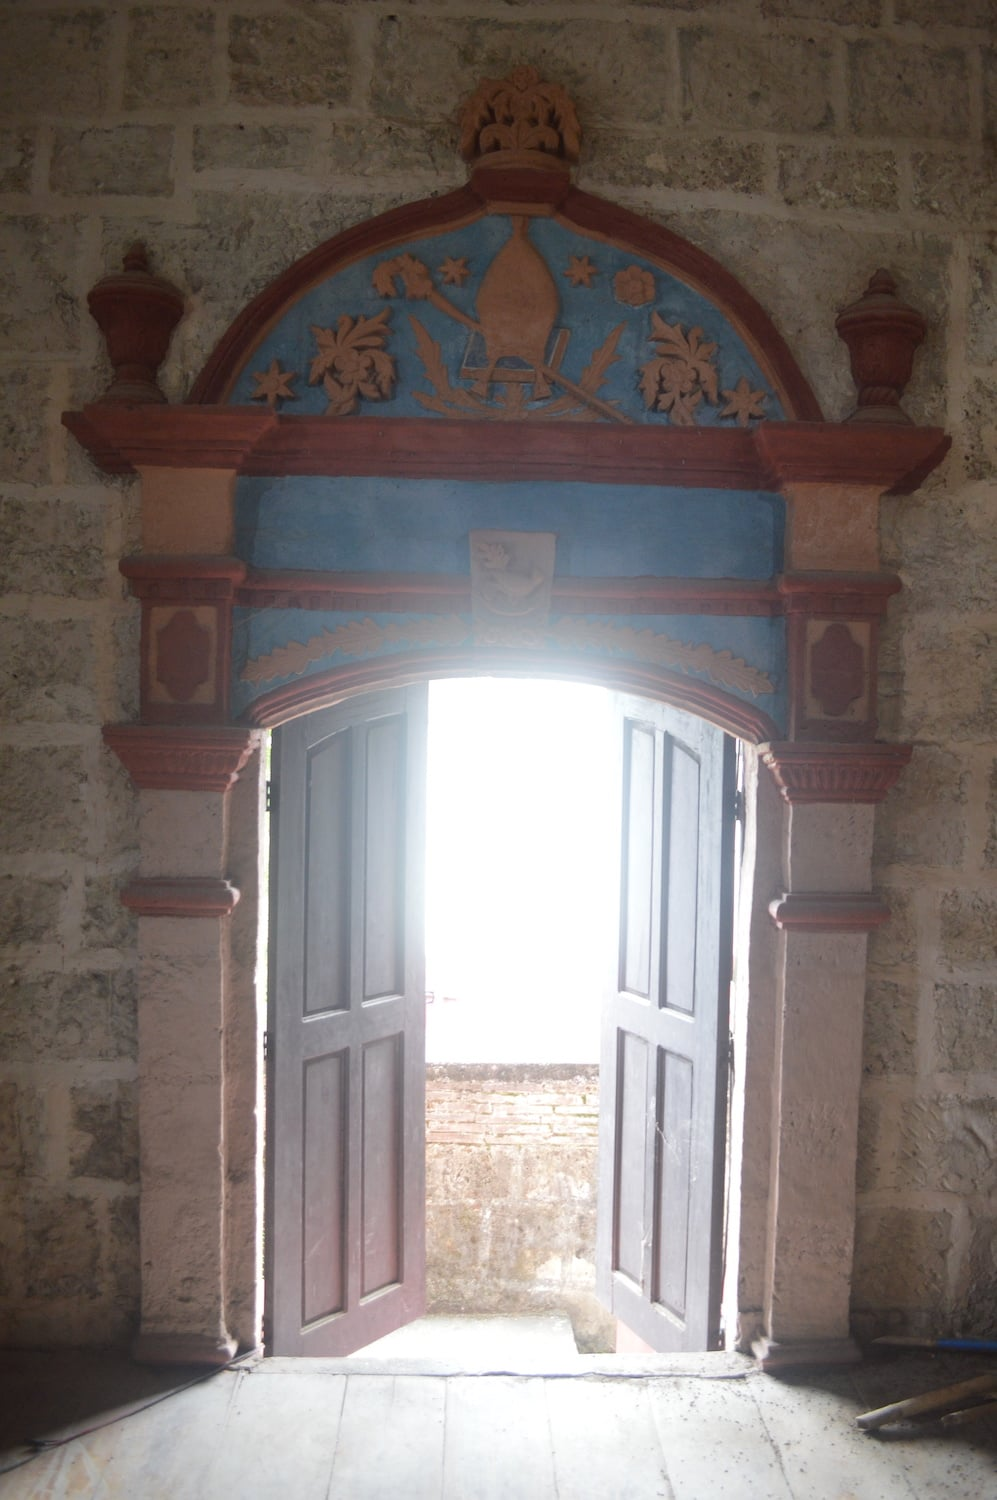 unique architectural interior feature of the church is the arched doorway